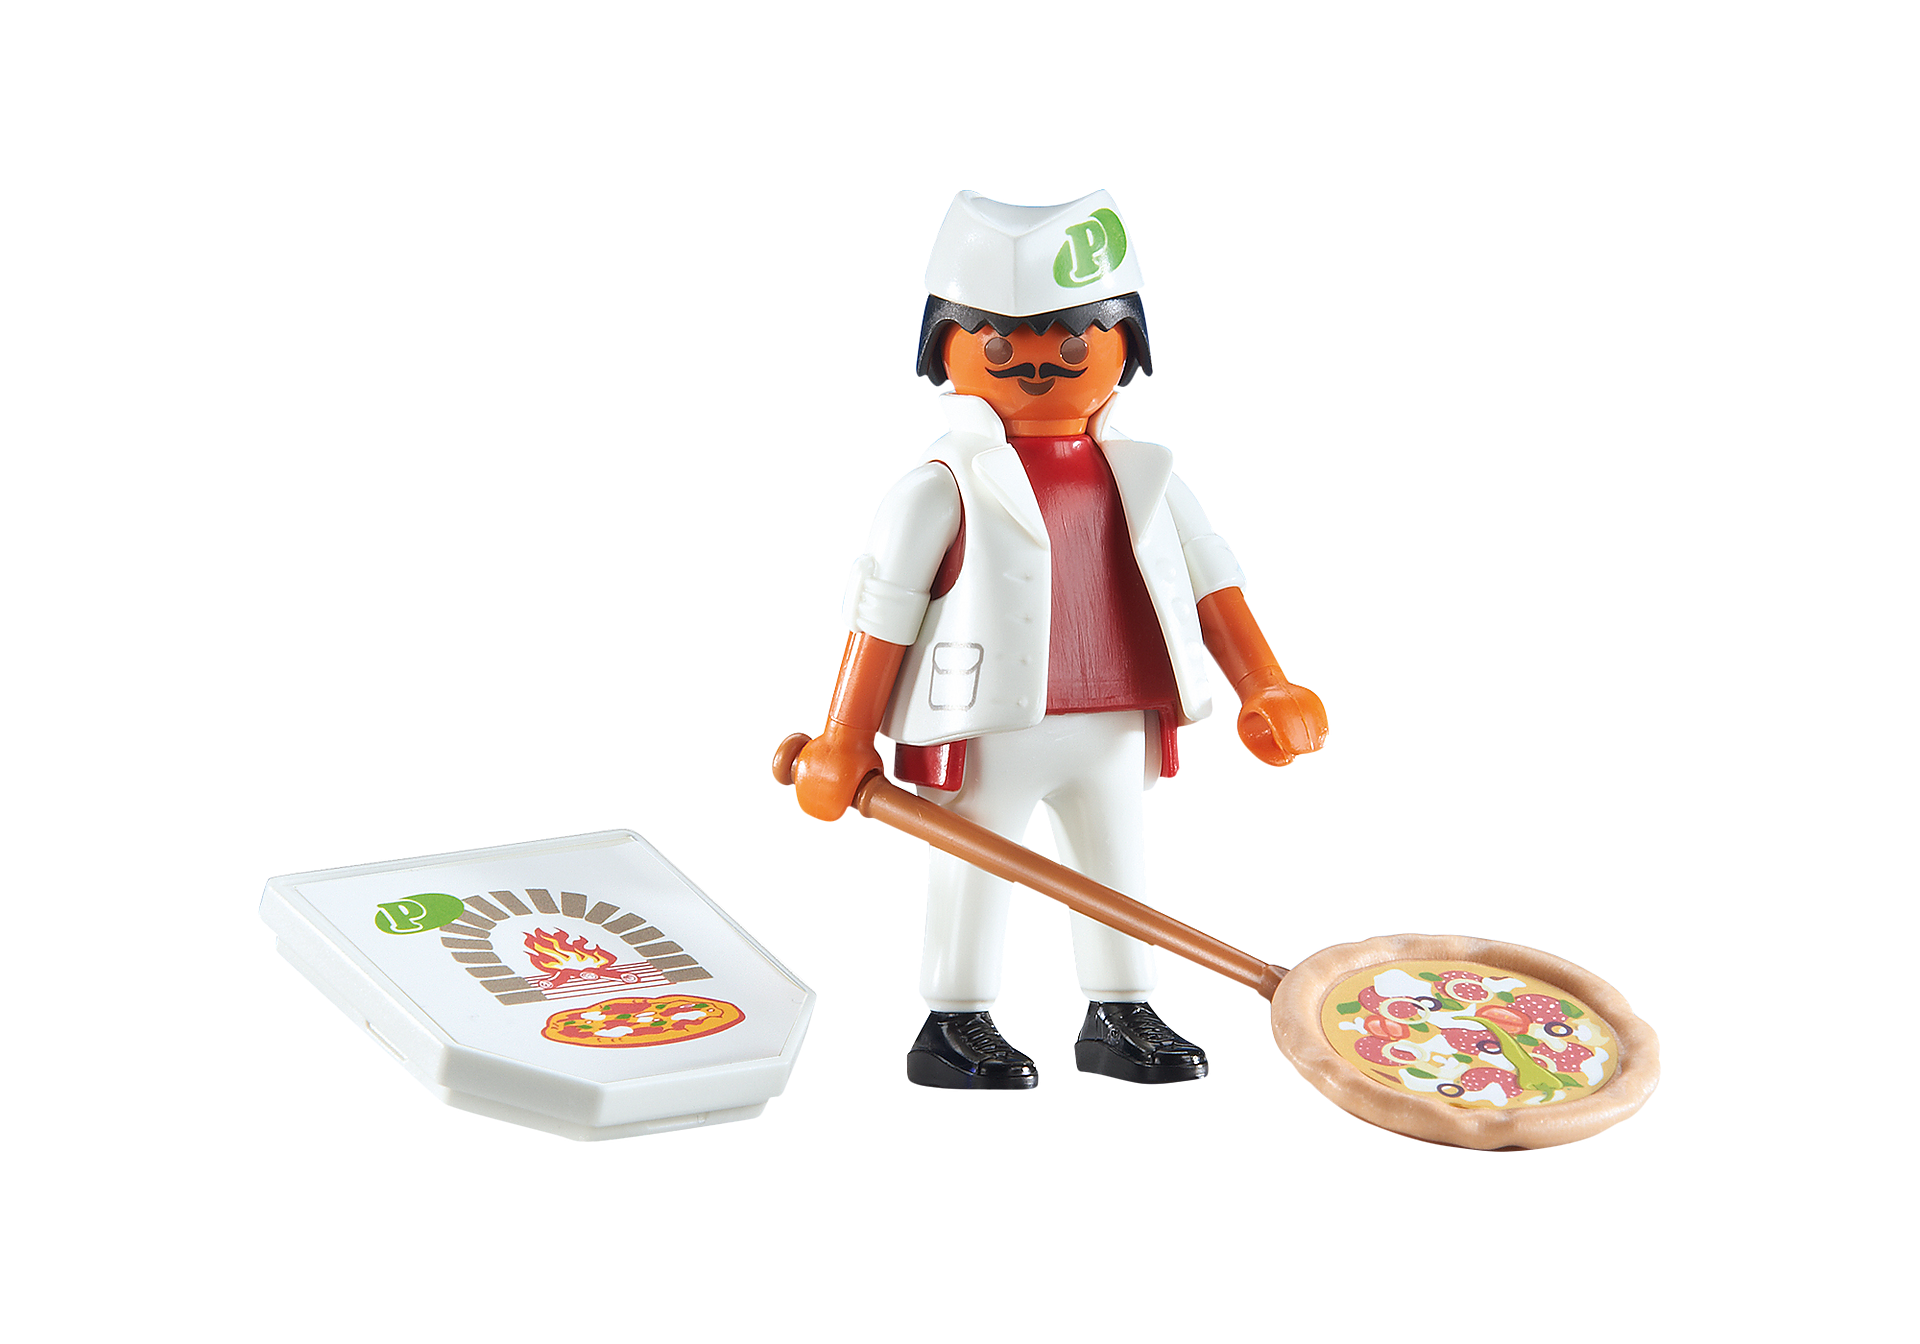 http://media.playmobil.com/i/playmobil/6392_product_detail/Pizzaiolo avec pizza